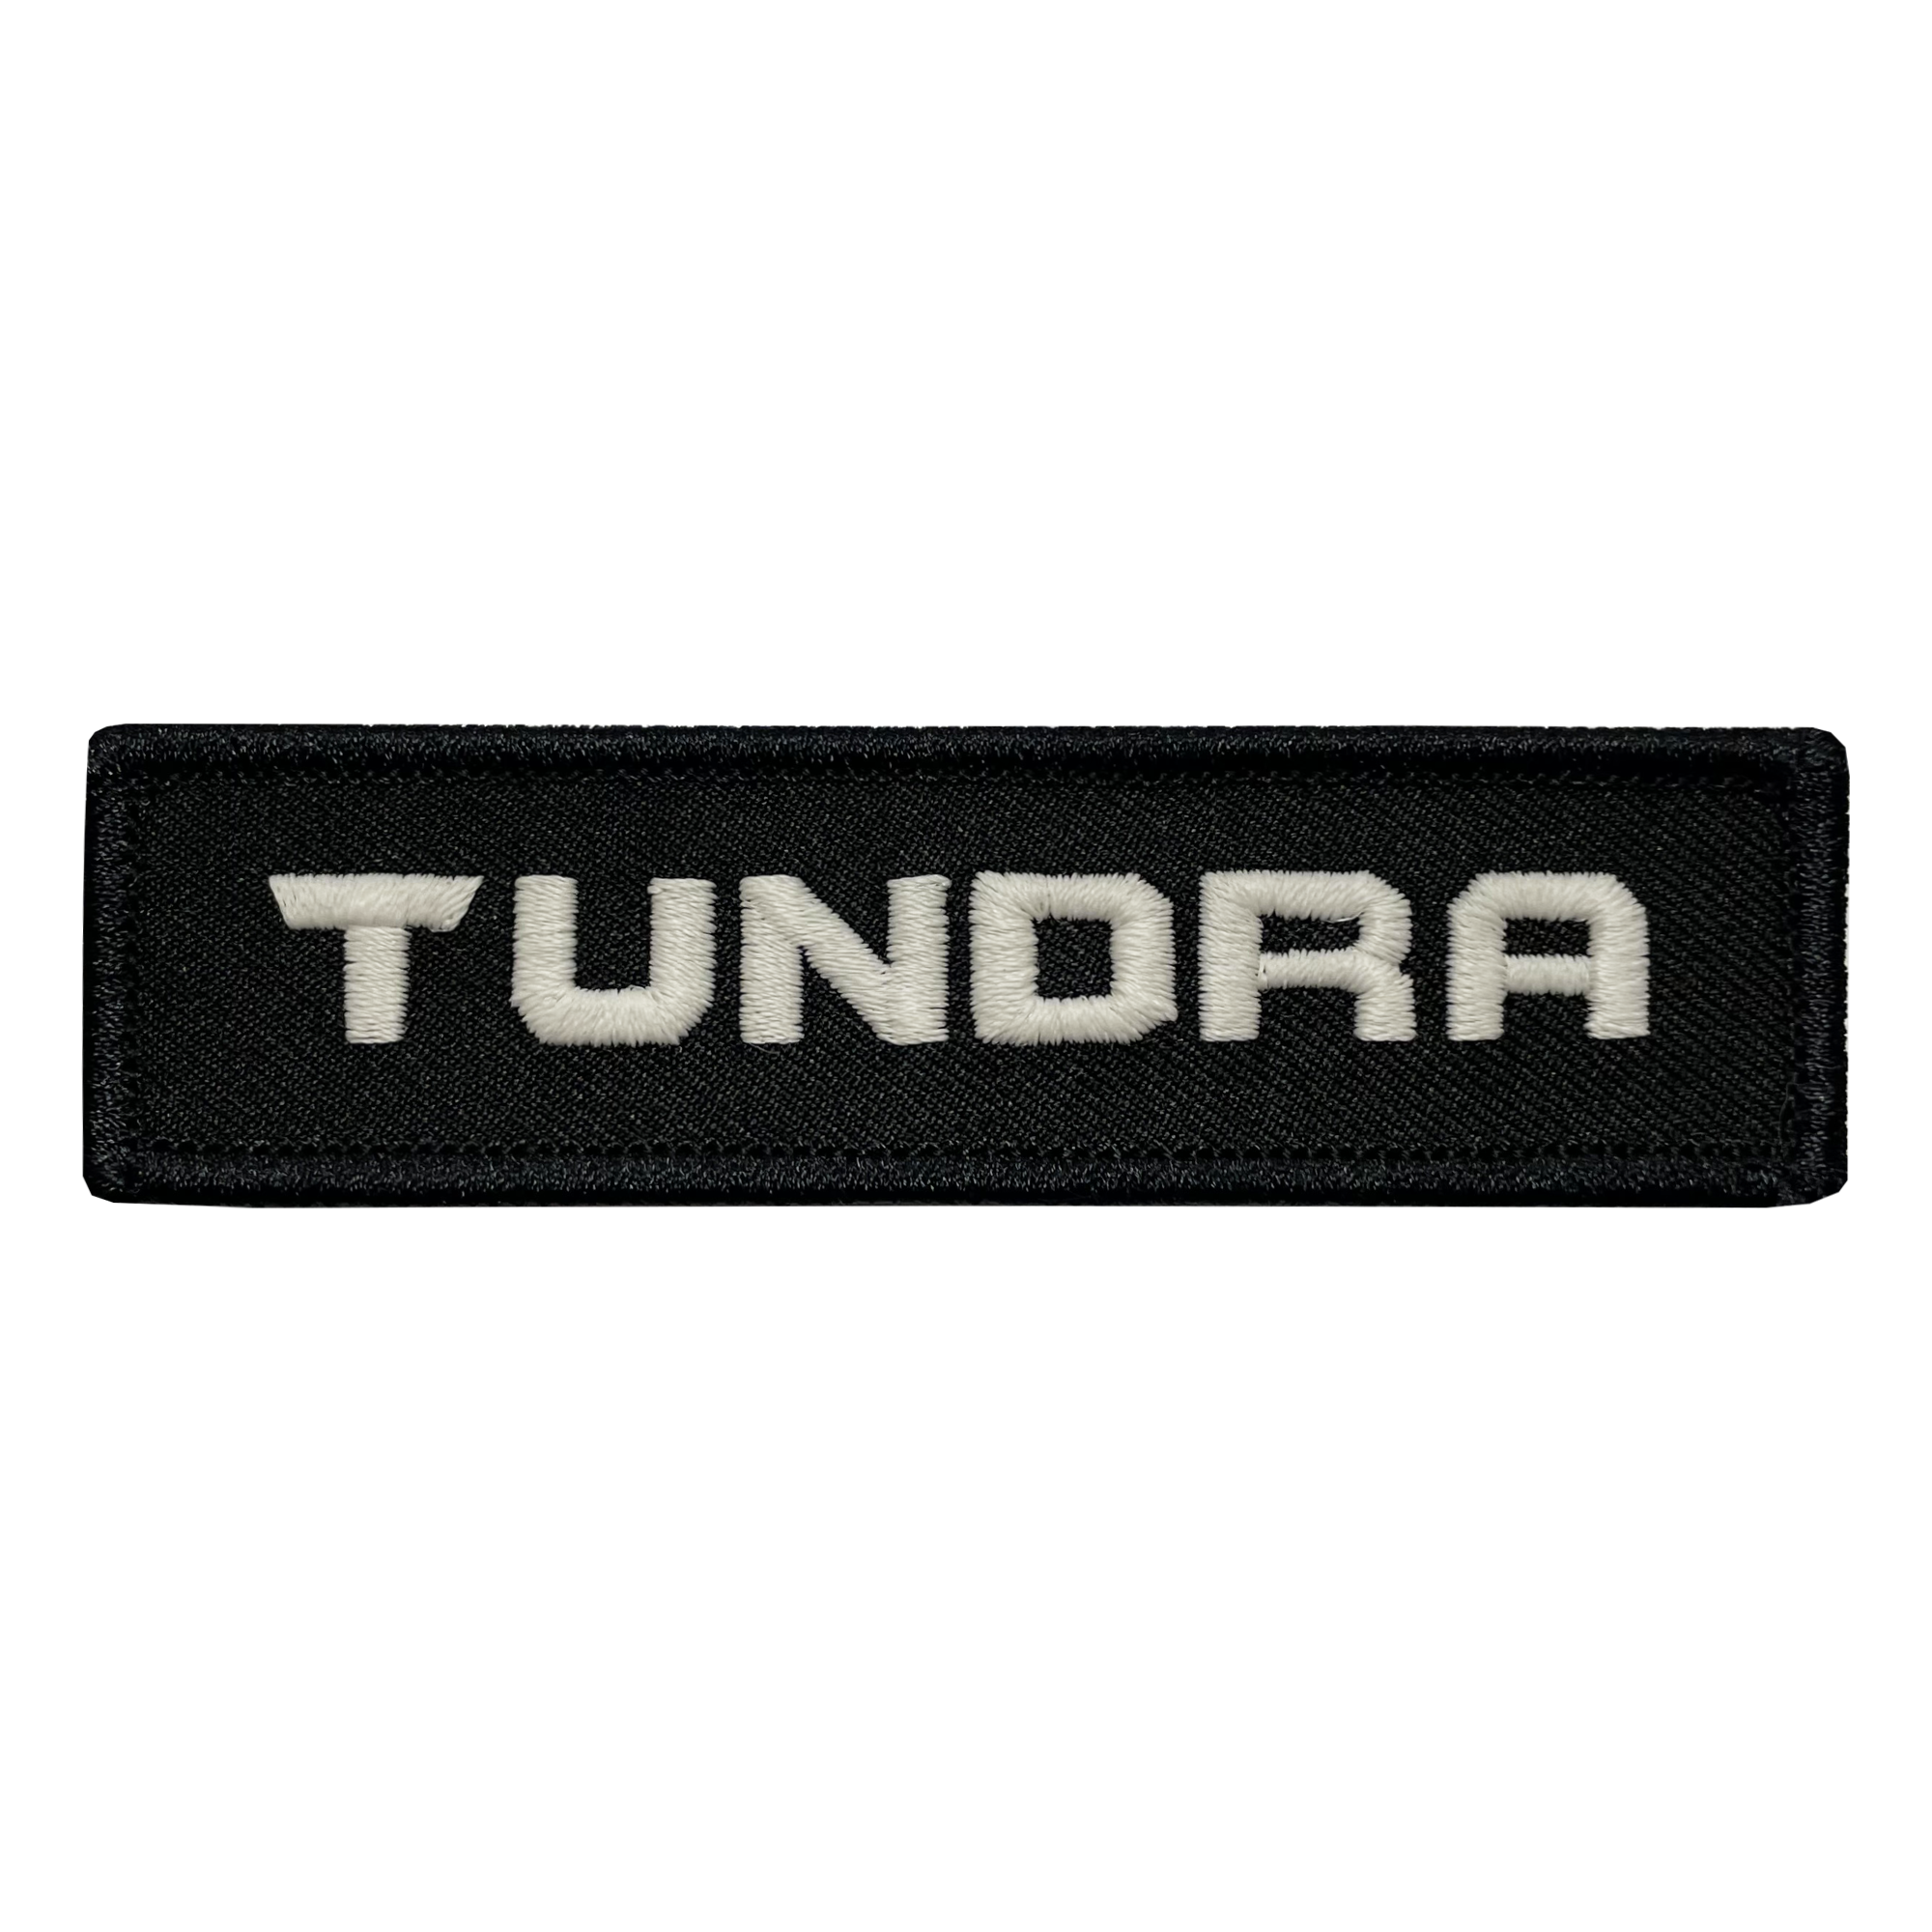 Tundra Black Name Tape Patch